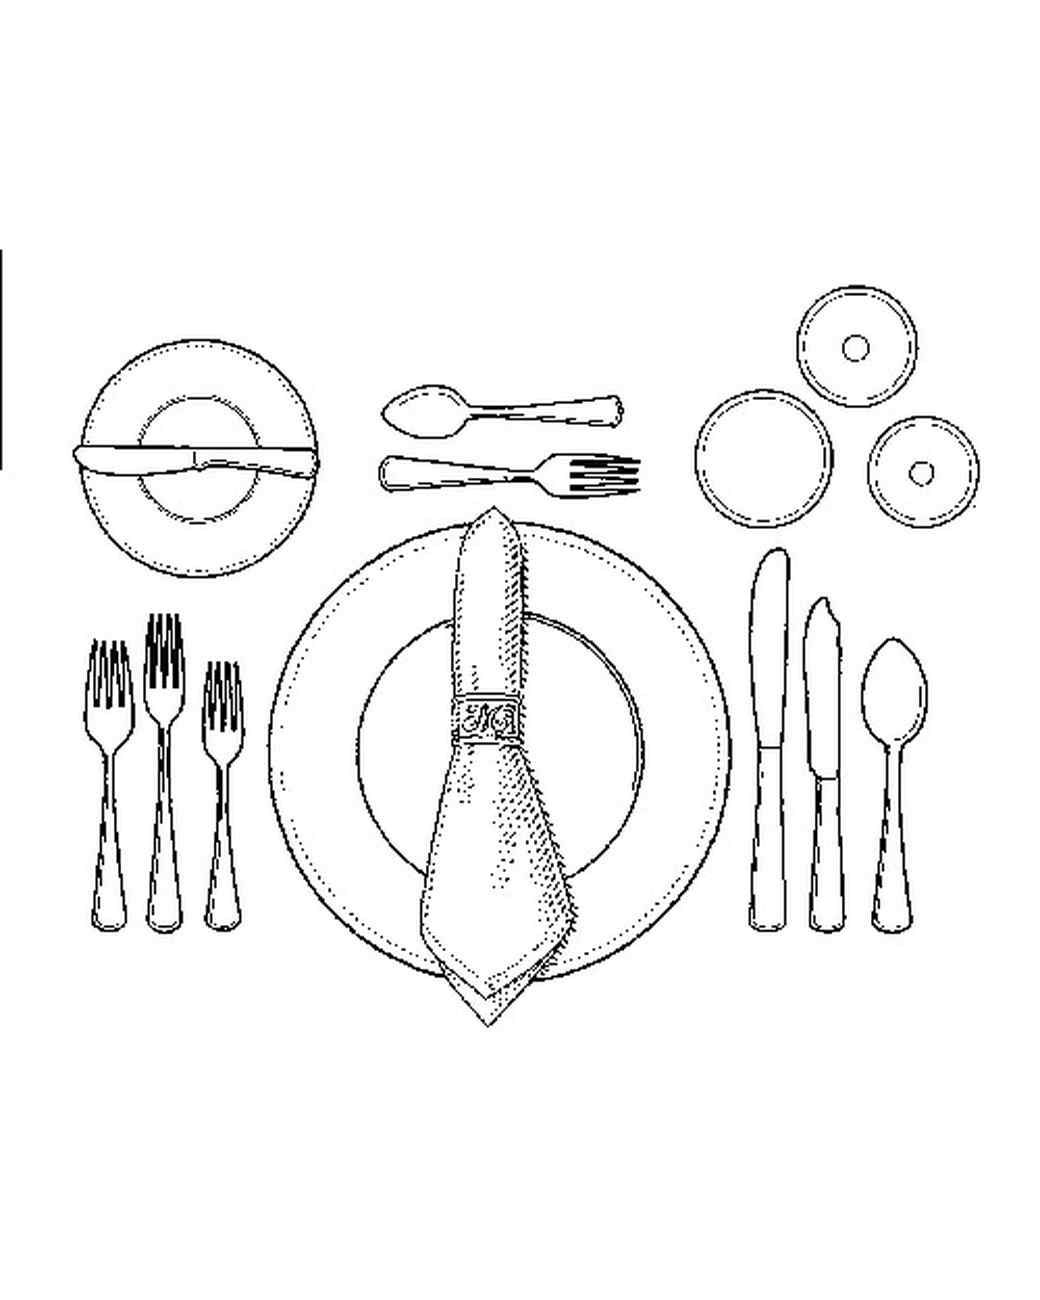 medium resolution of table setting diagram including champagne